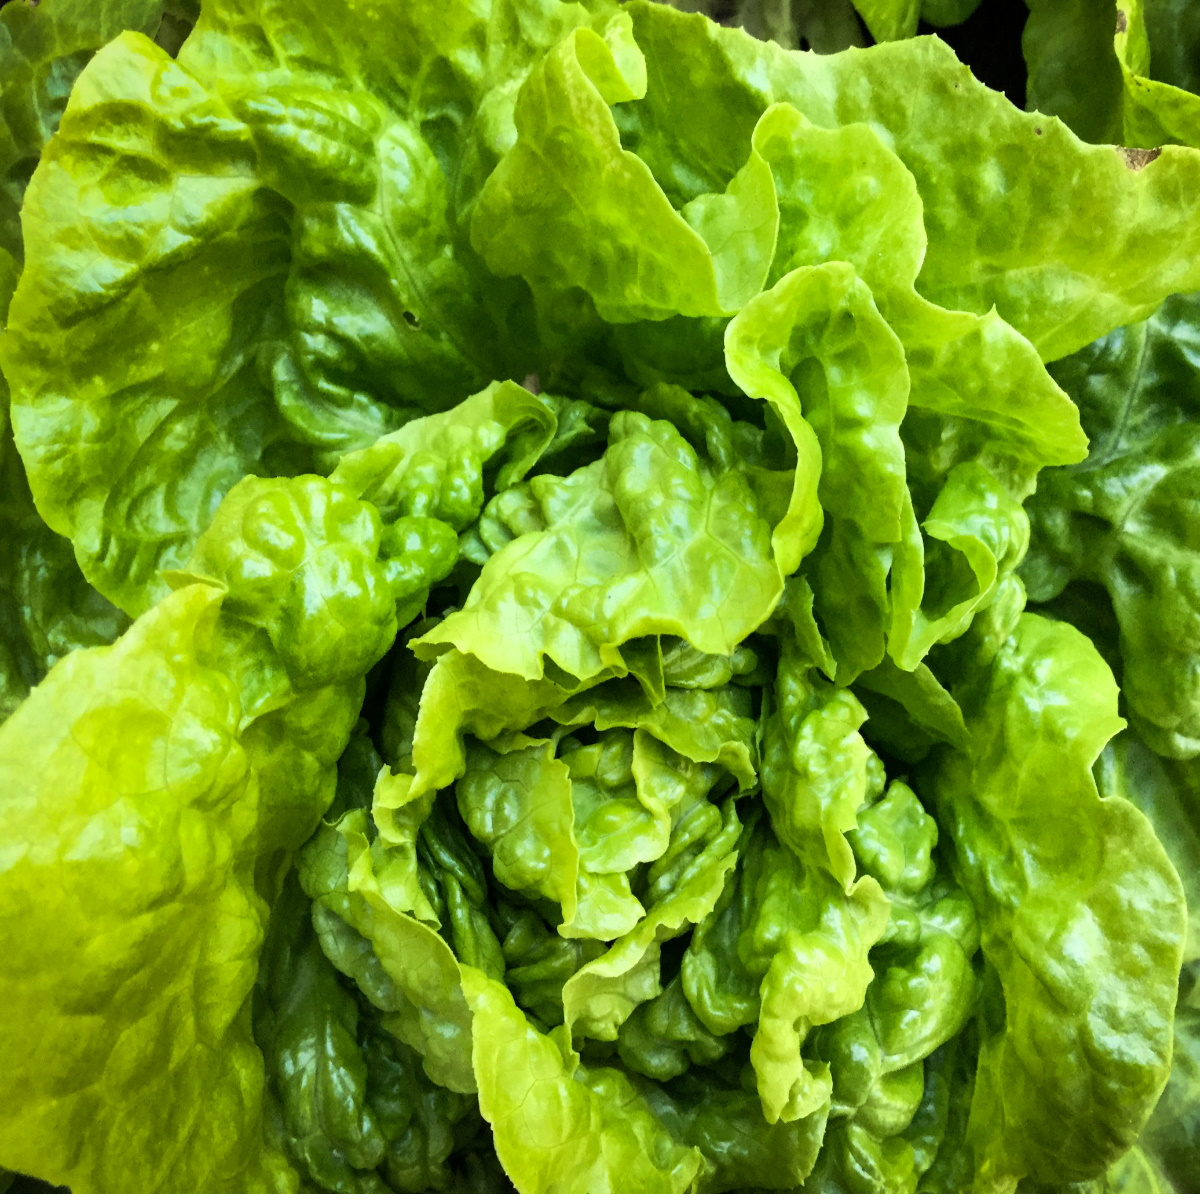 Okanagan Valley Head of Lettuce